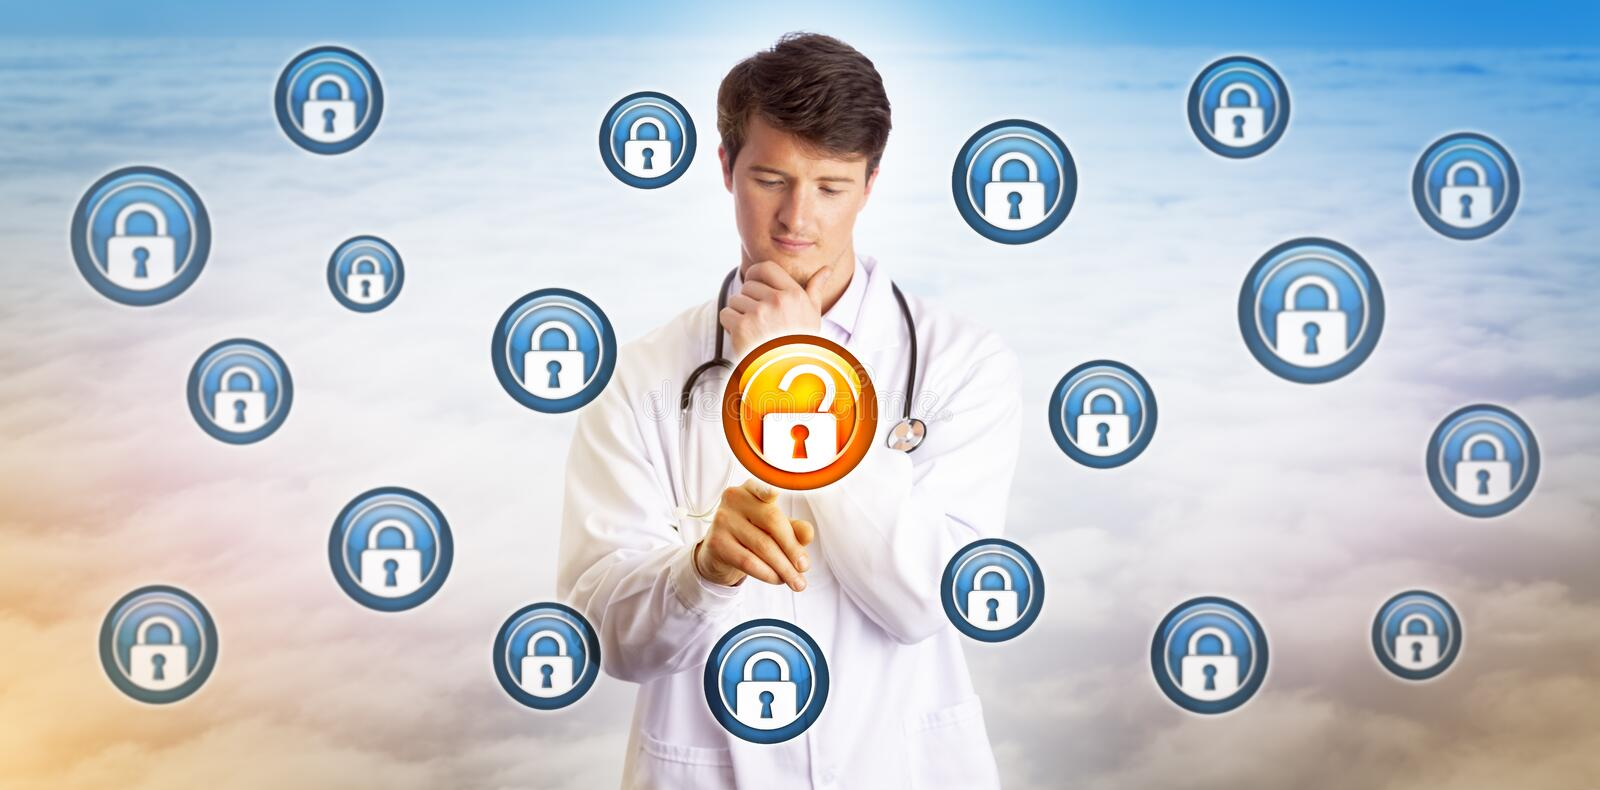 Junger Doktor Unlocking Data File im Cyberspace stockbild